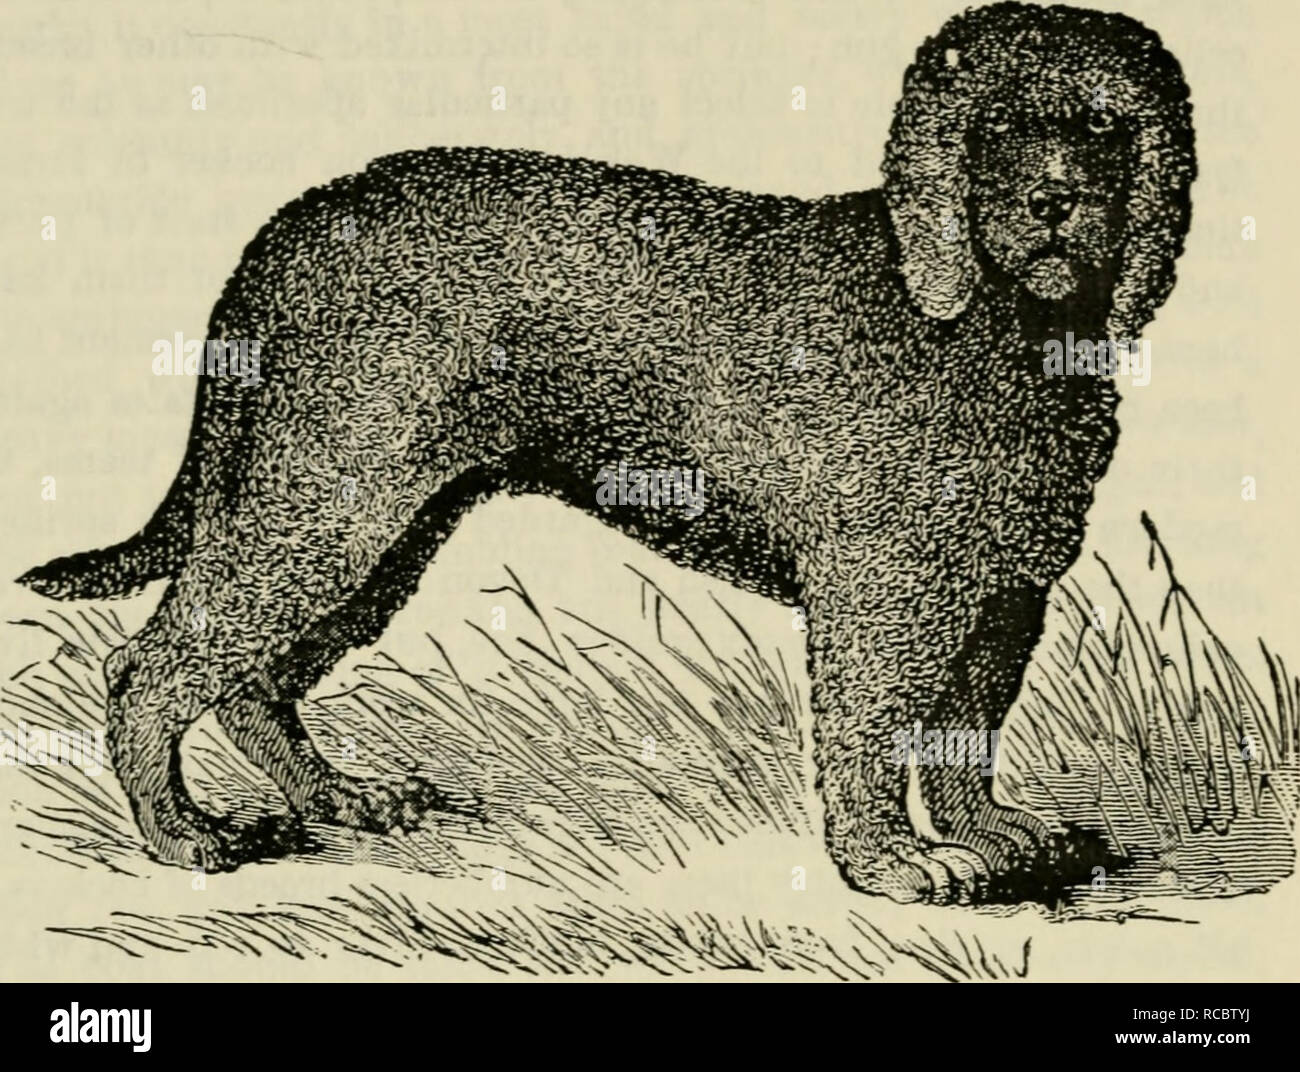 . The dogs of Great Britain, America, and [other] countries : their breeding, training, and management in health and disease,comprising all the essential parts of the two standard works on the dog. Dogs. 118 dome..ti(j..t::i) dogs fou the g0K.. Fig. 21.—IRISH WATER SPANIEL, KAKE. THE WATER SPANIEL. WaUr Spaniels are commonly said to have web-feet, and this point is often made a ground of distinction from other dogs, but tlie fact is that all dogs have their toes united by membranes in the same way, the only distinction between the water and land dogs being that the former liave larger feet, an - Stock Image